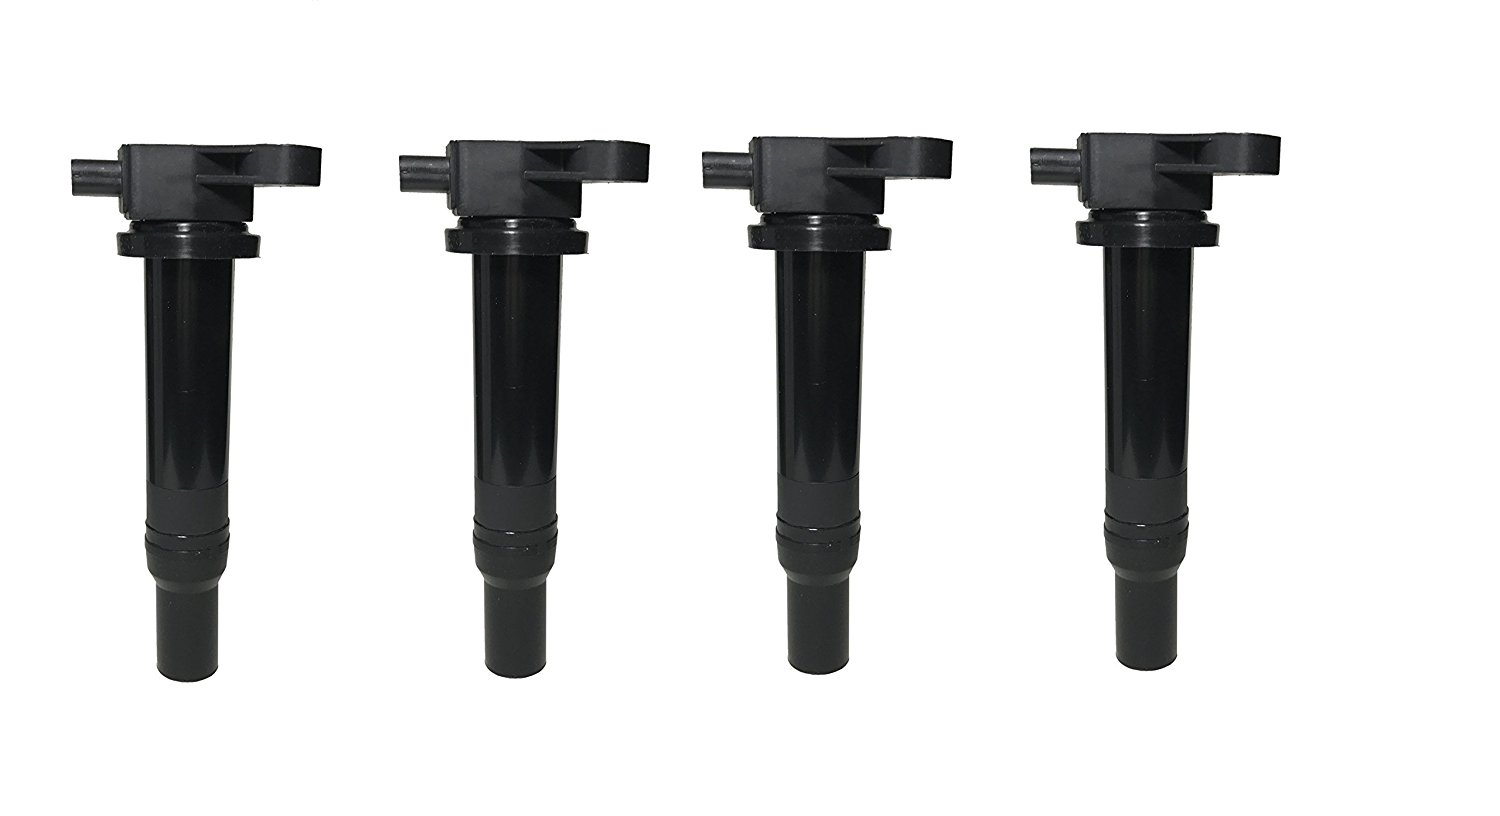 Ignition Coil Pack Set of 4 - Hyundai Accent, Kia Rio - Replaces #27301-26640 Image